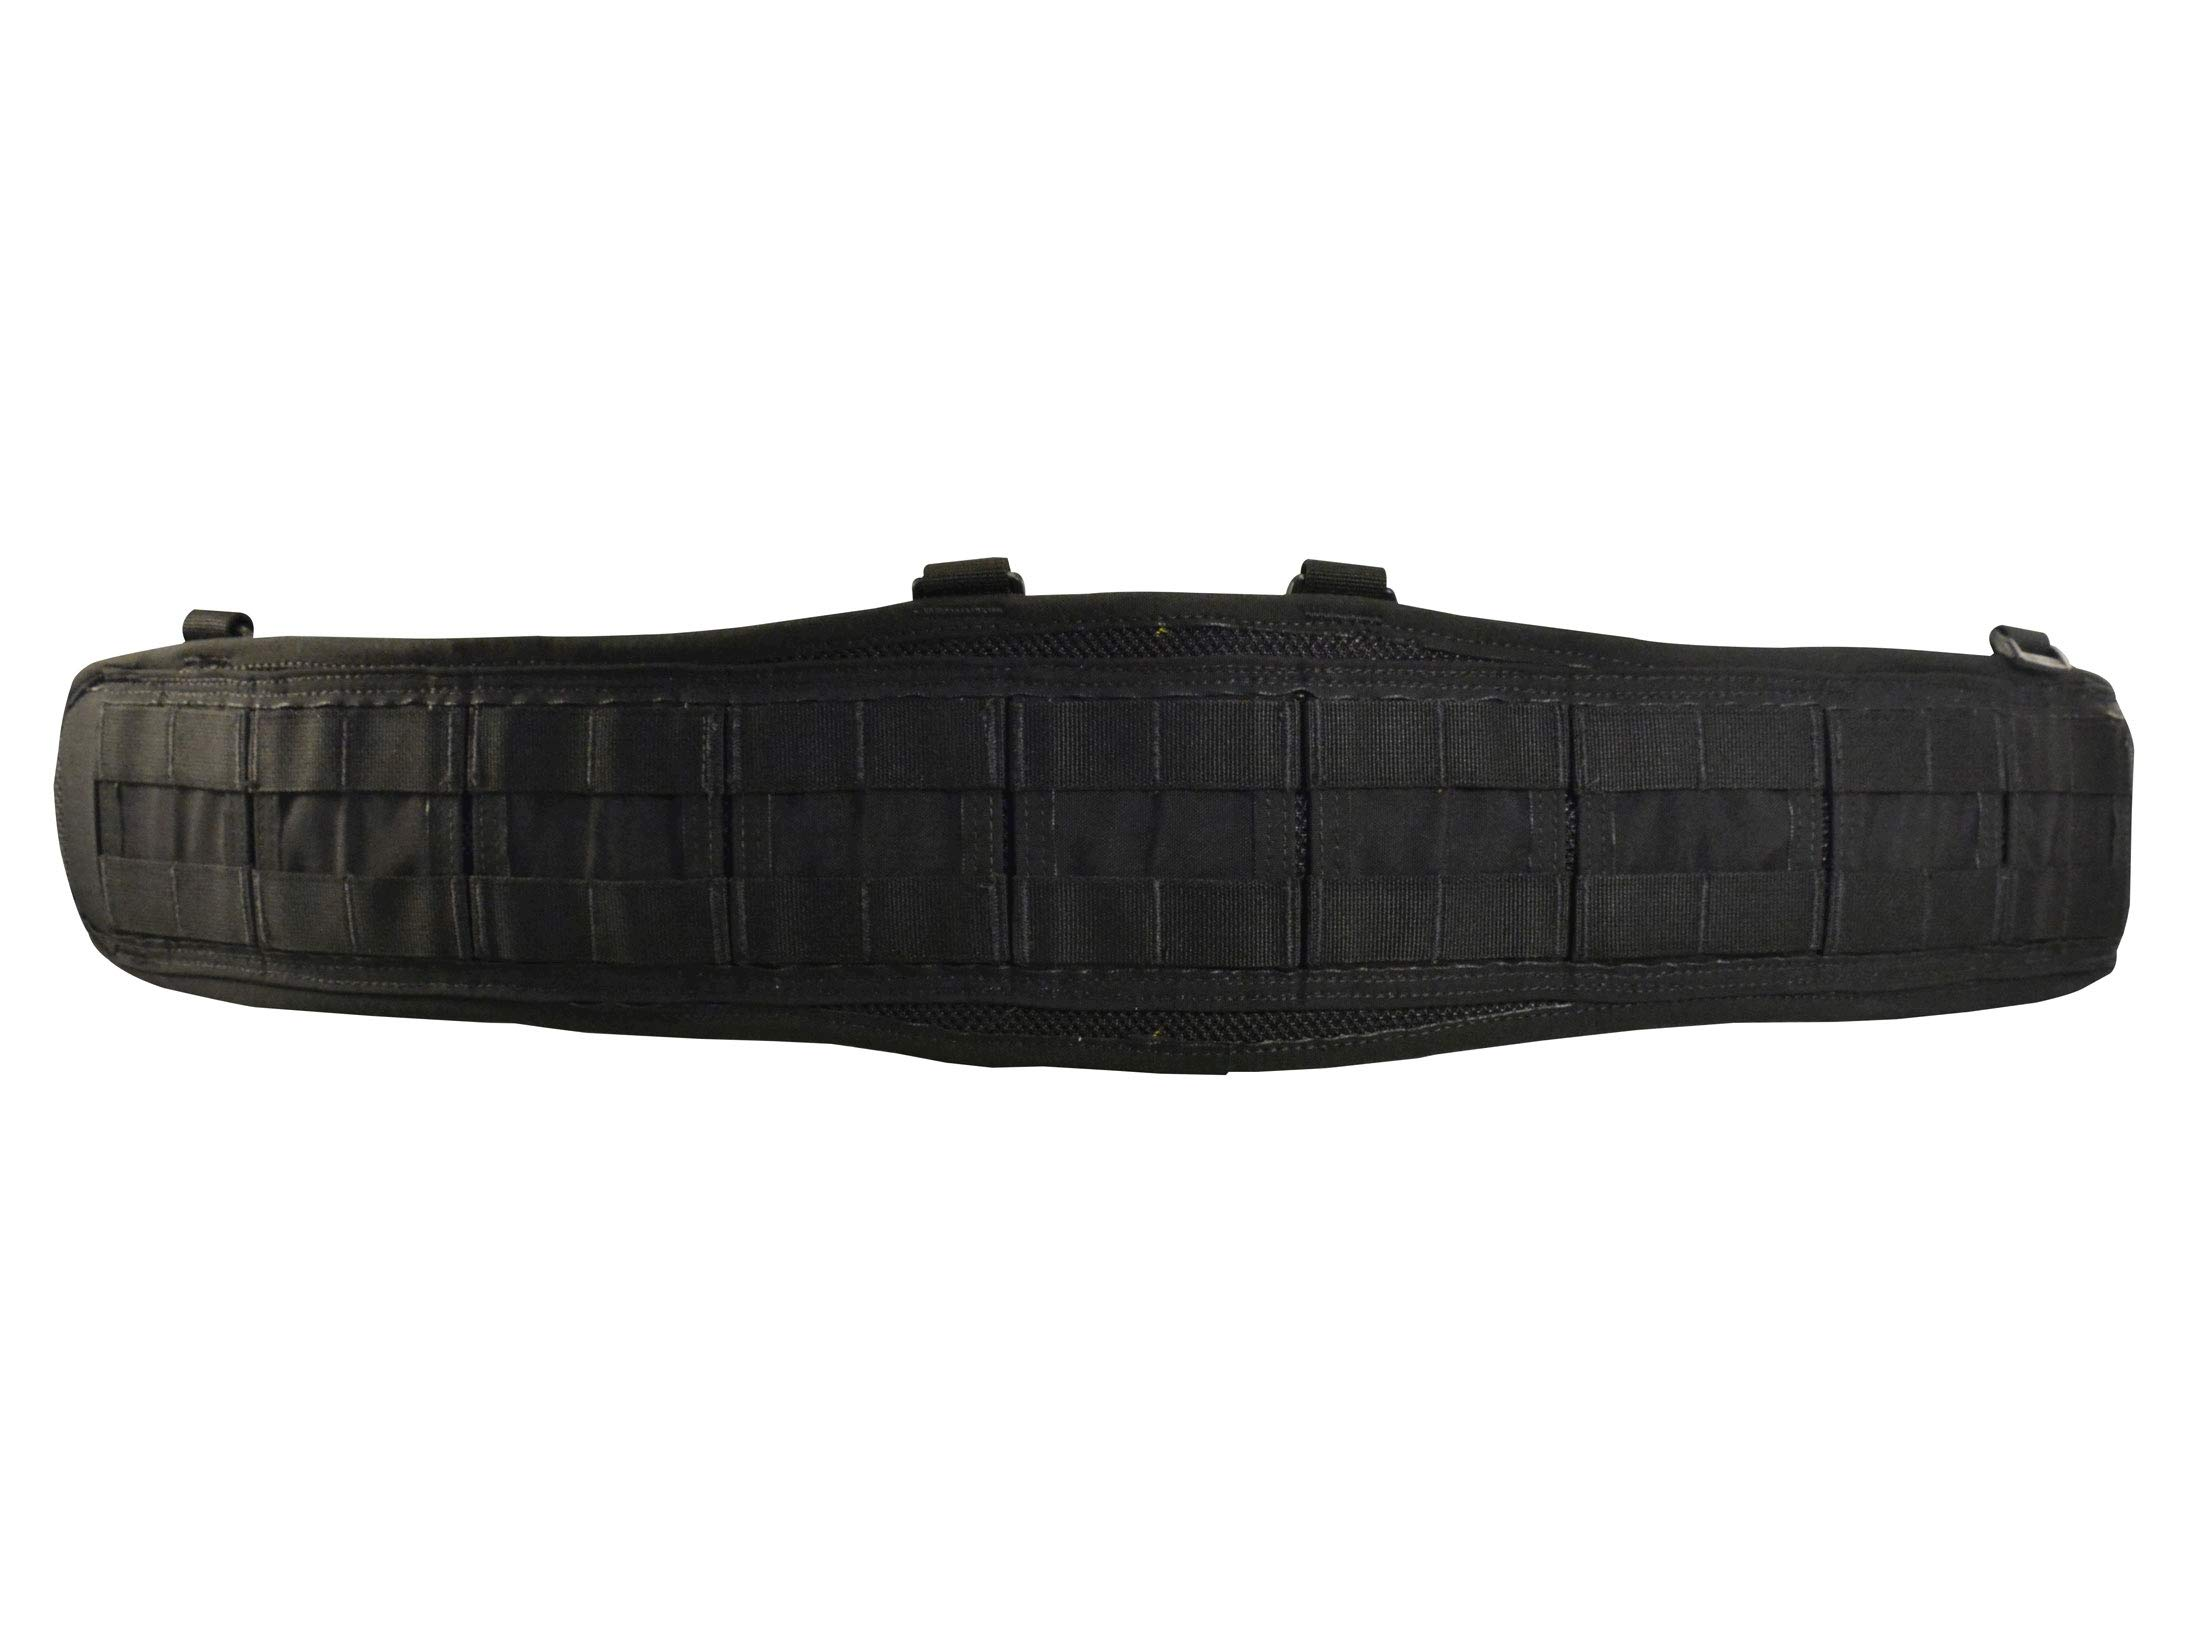 Viking Tactics Battle Belt (Brokos Belt) (Black, XX-Large) by Viking Tactics (Image #1)